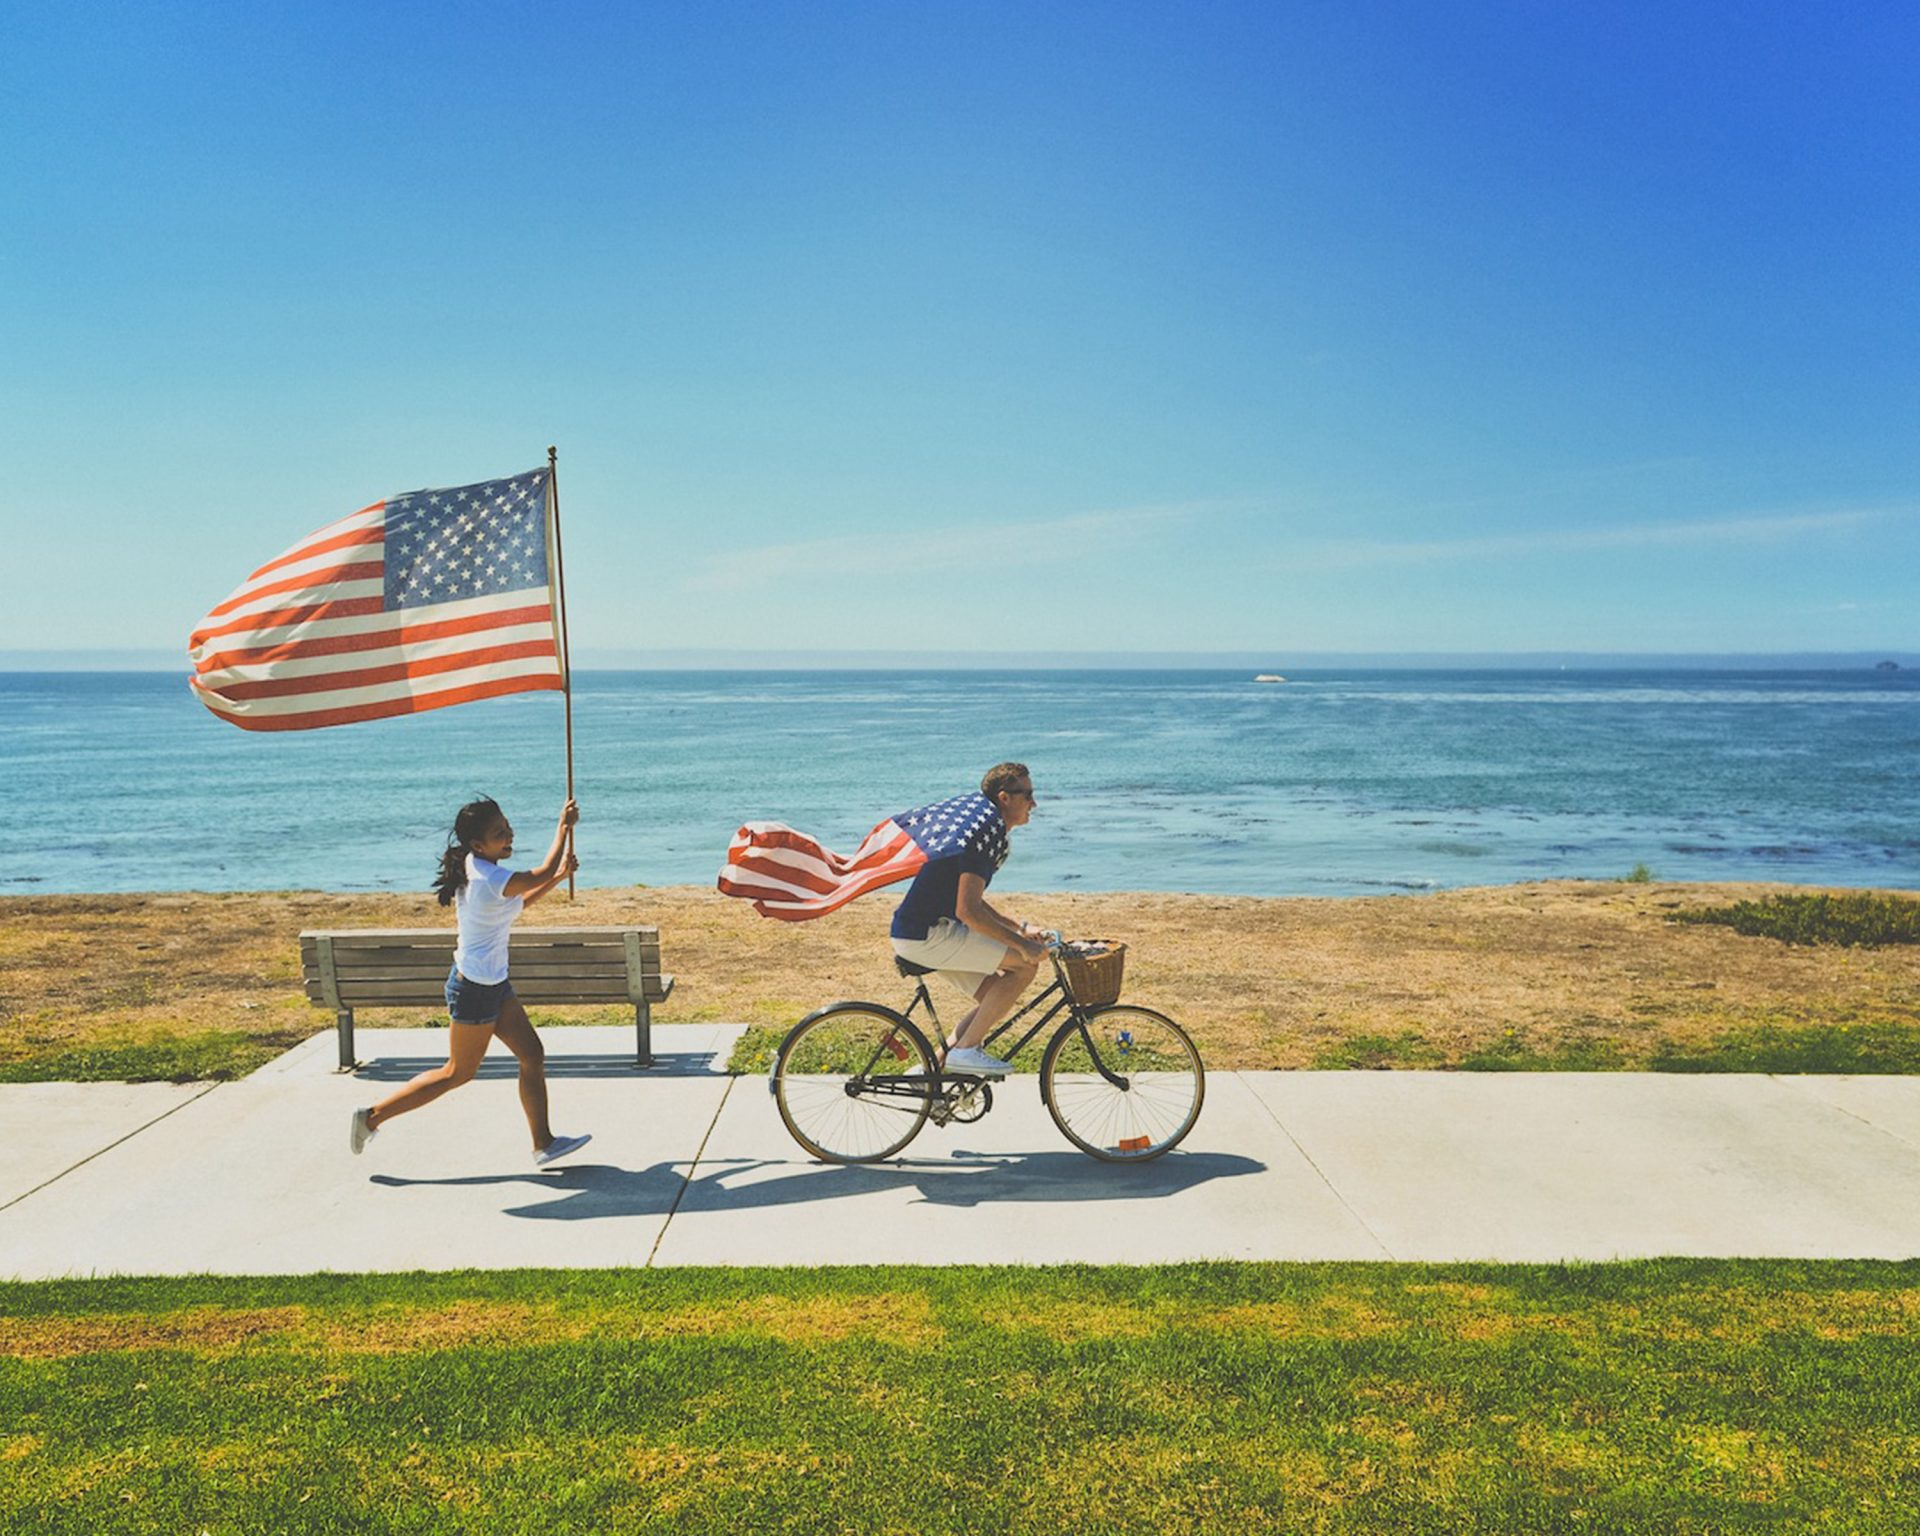 frank mckenna JB92NeJSxW4 unsplash Traveling to the USA? The Need to Apply for a US ESTA